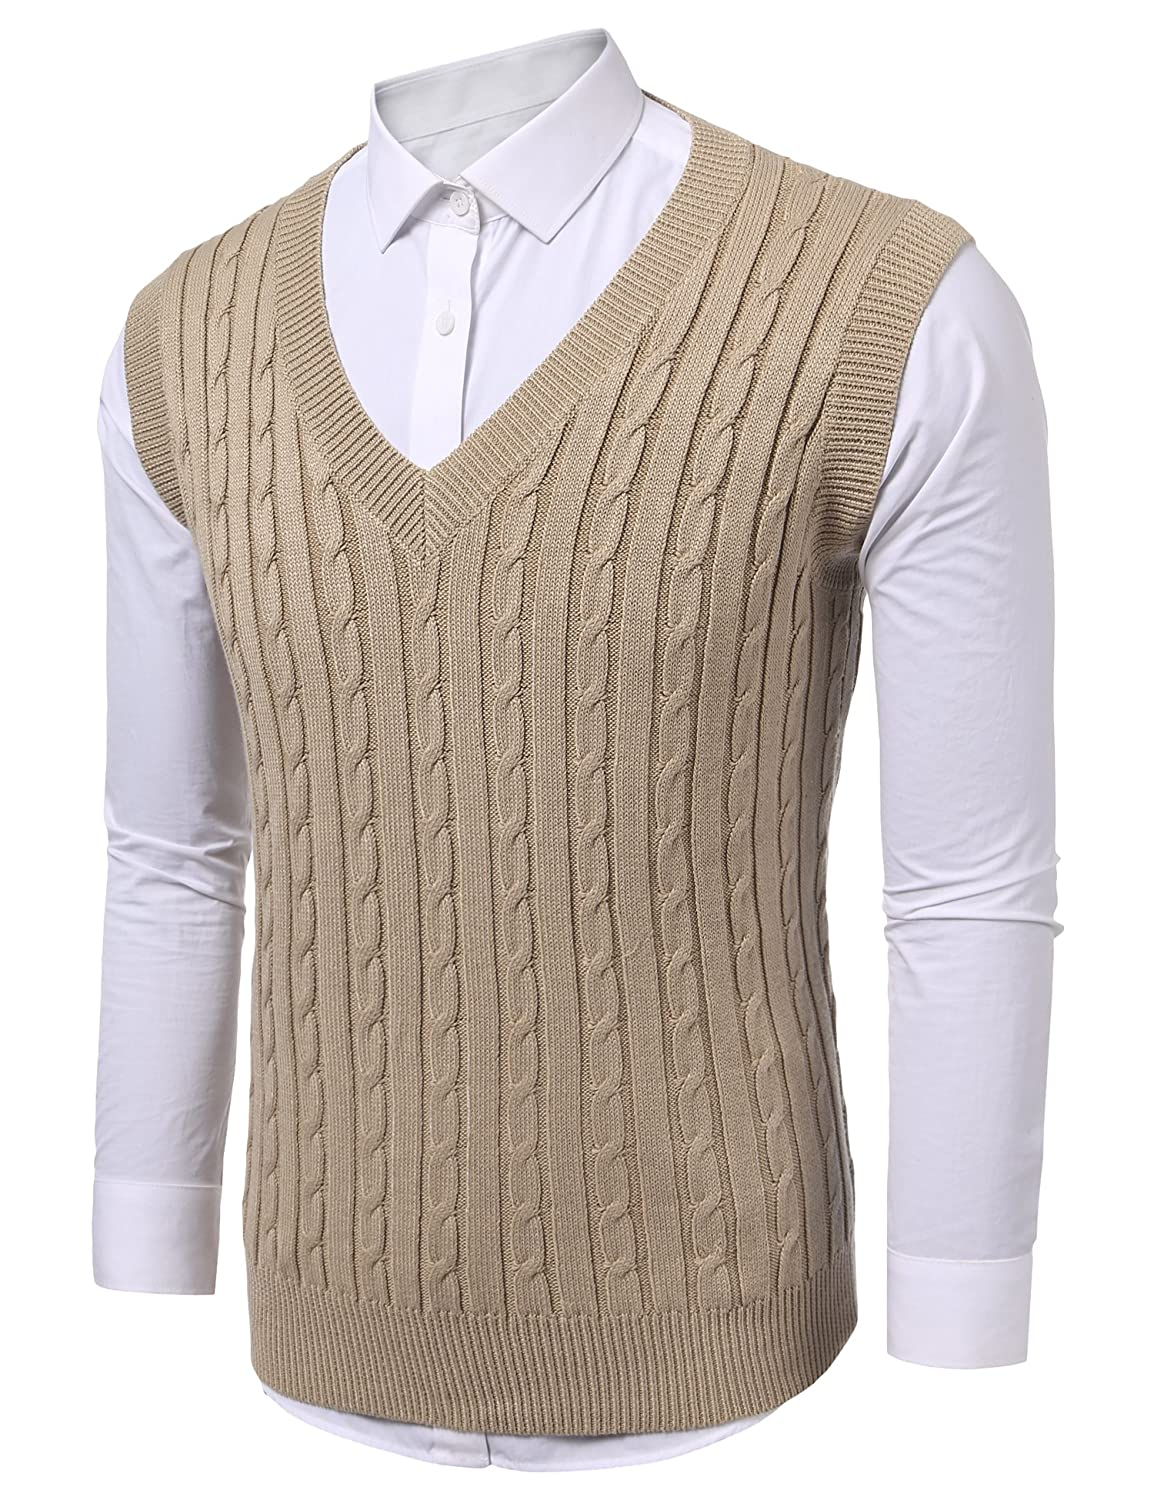 COOFANDY Mens Casual Knitted Sweater Slim Fit Pullover Cable Sweater Links-Vest AS12240808